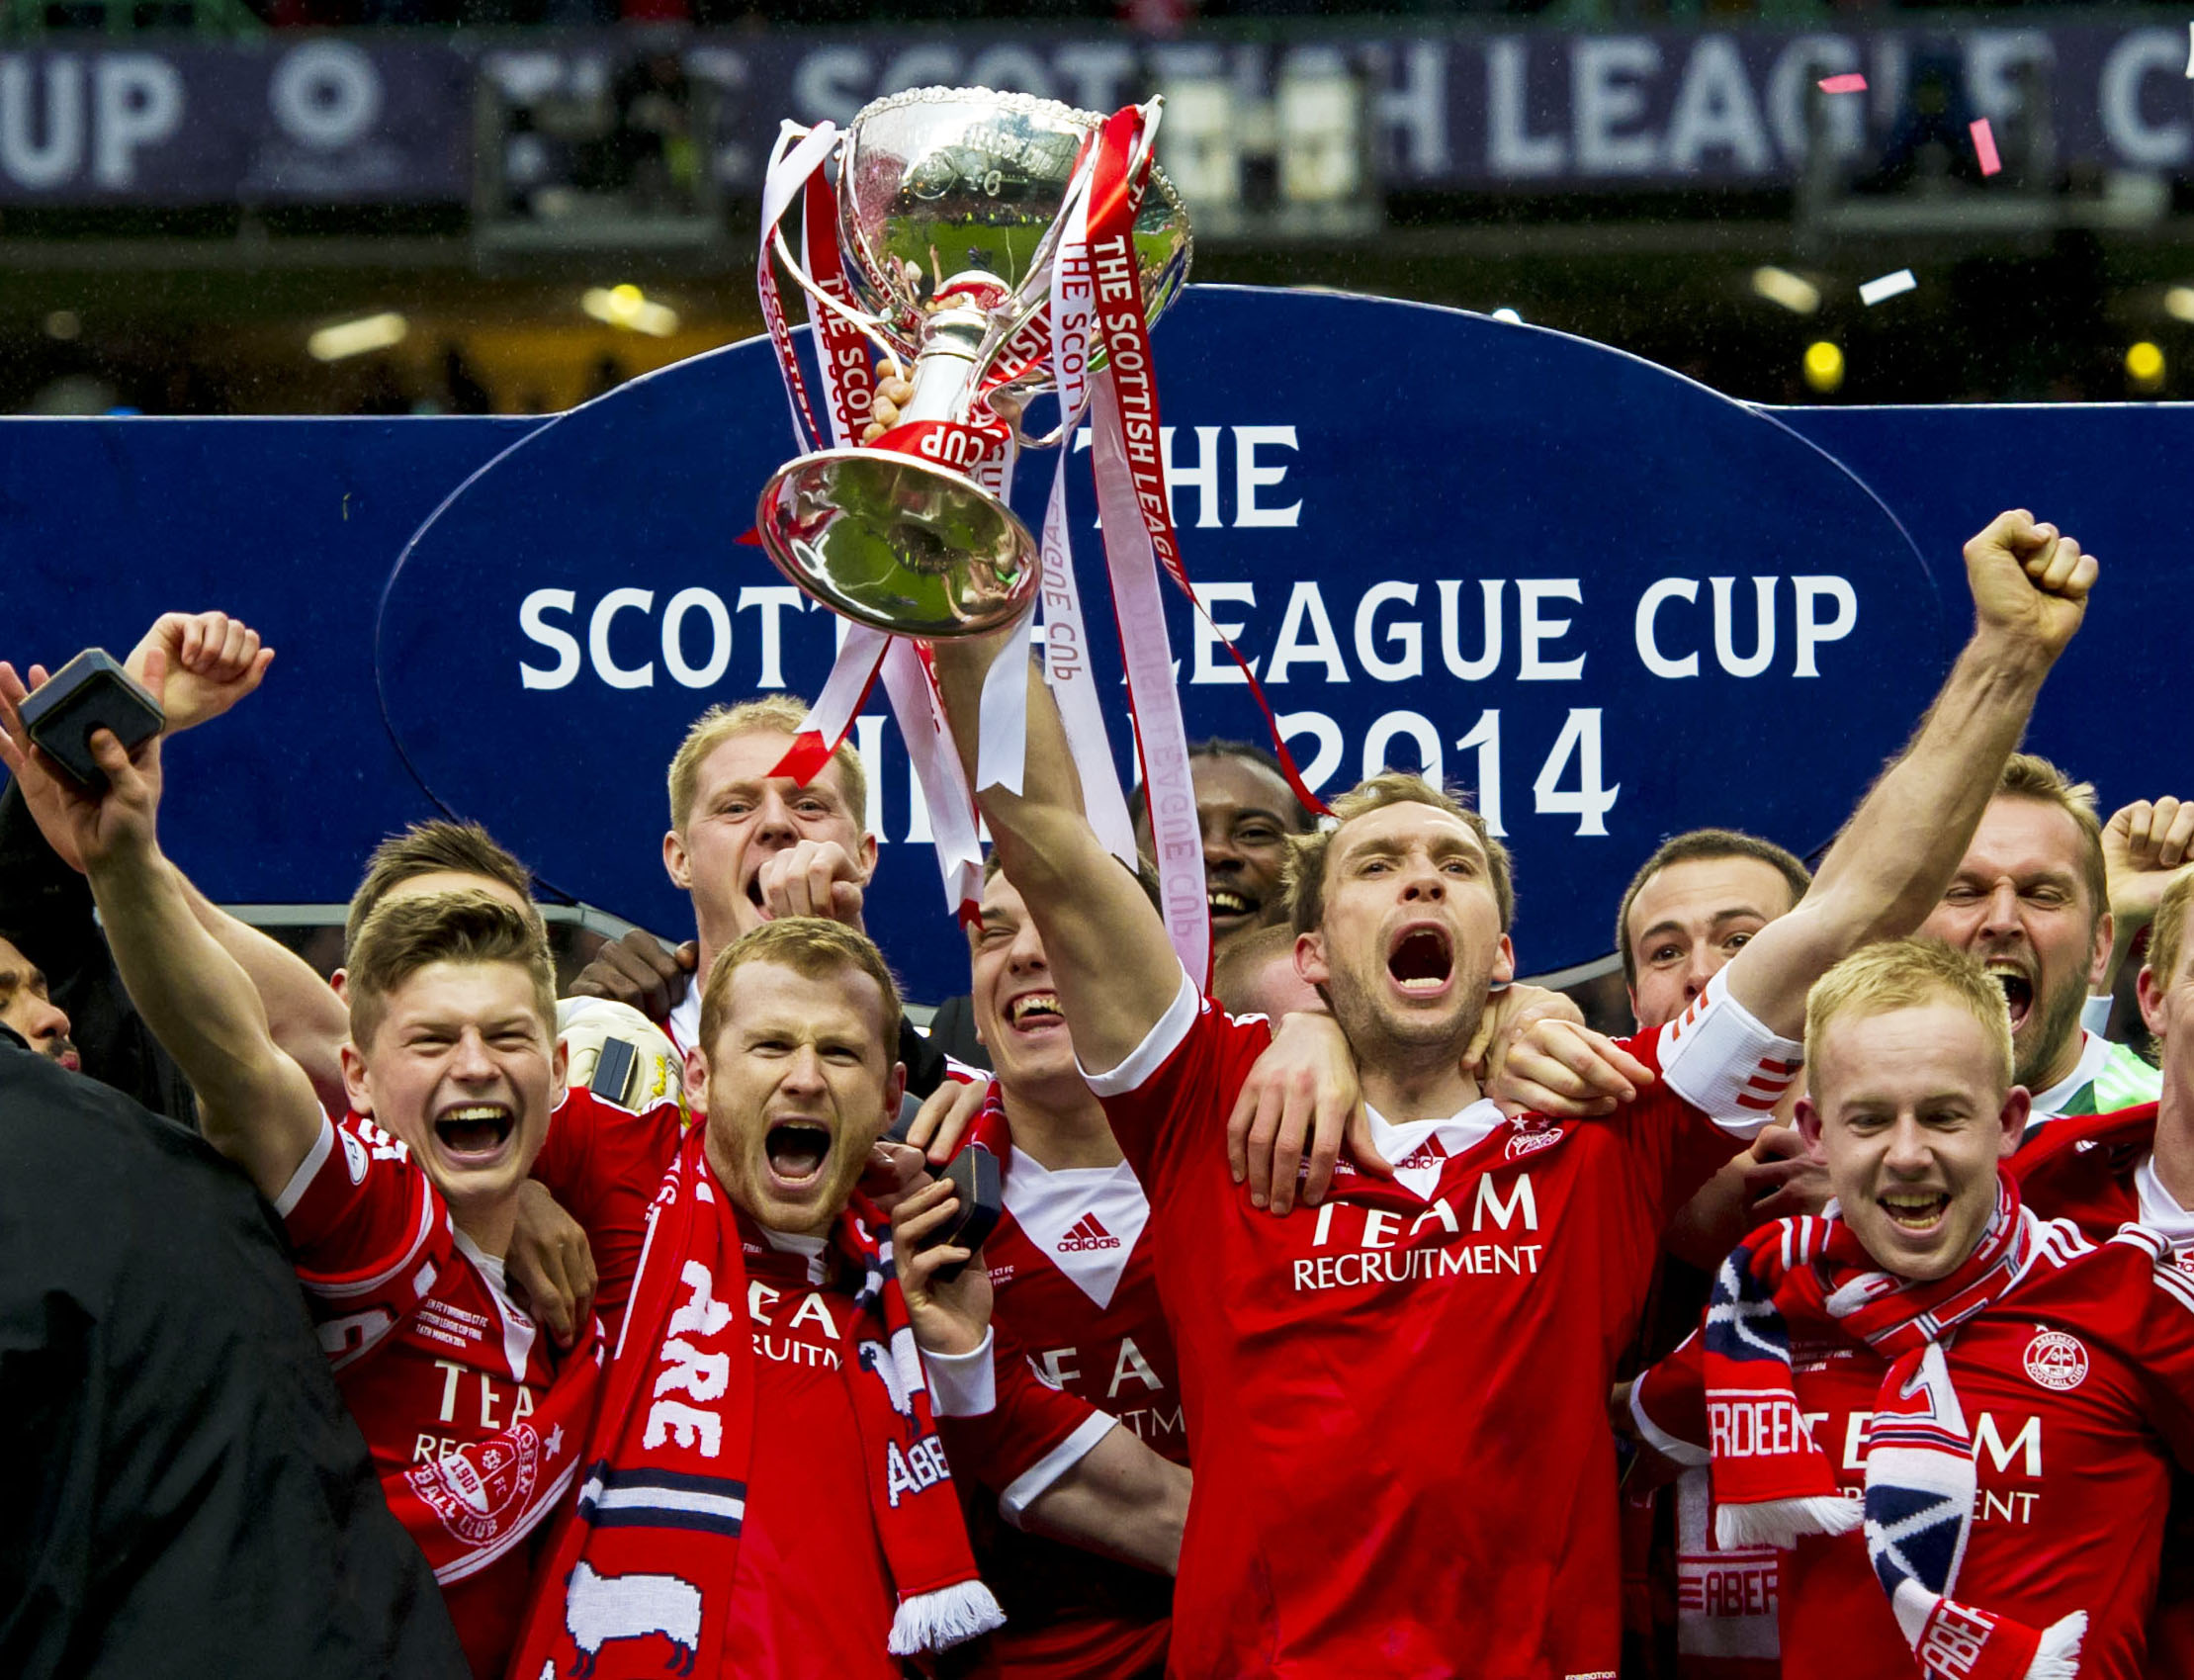 Russell Anderson lifts the trophy after the 2014 League Cup final.